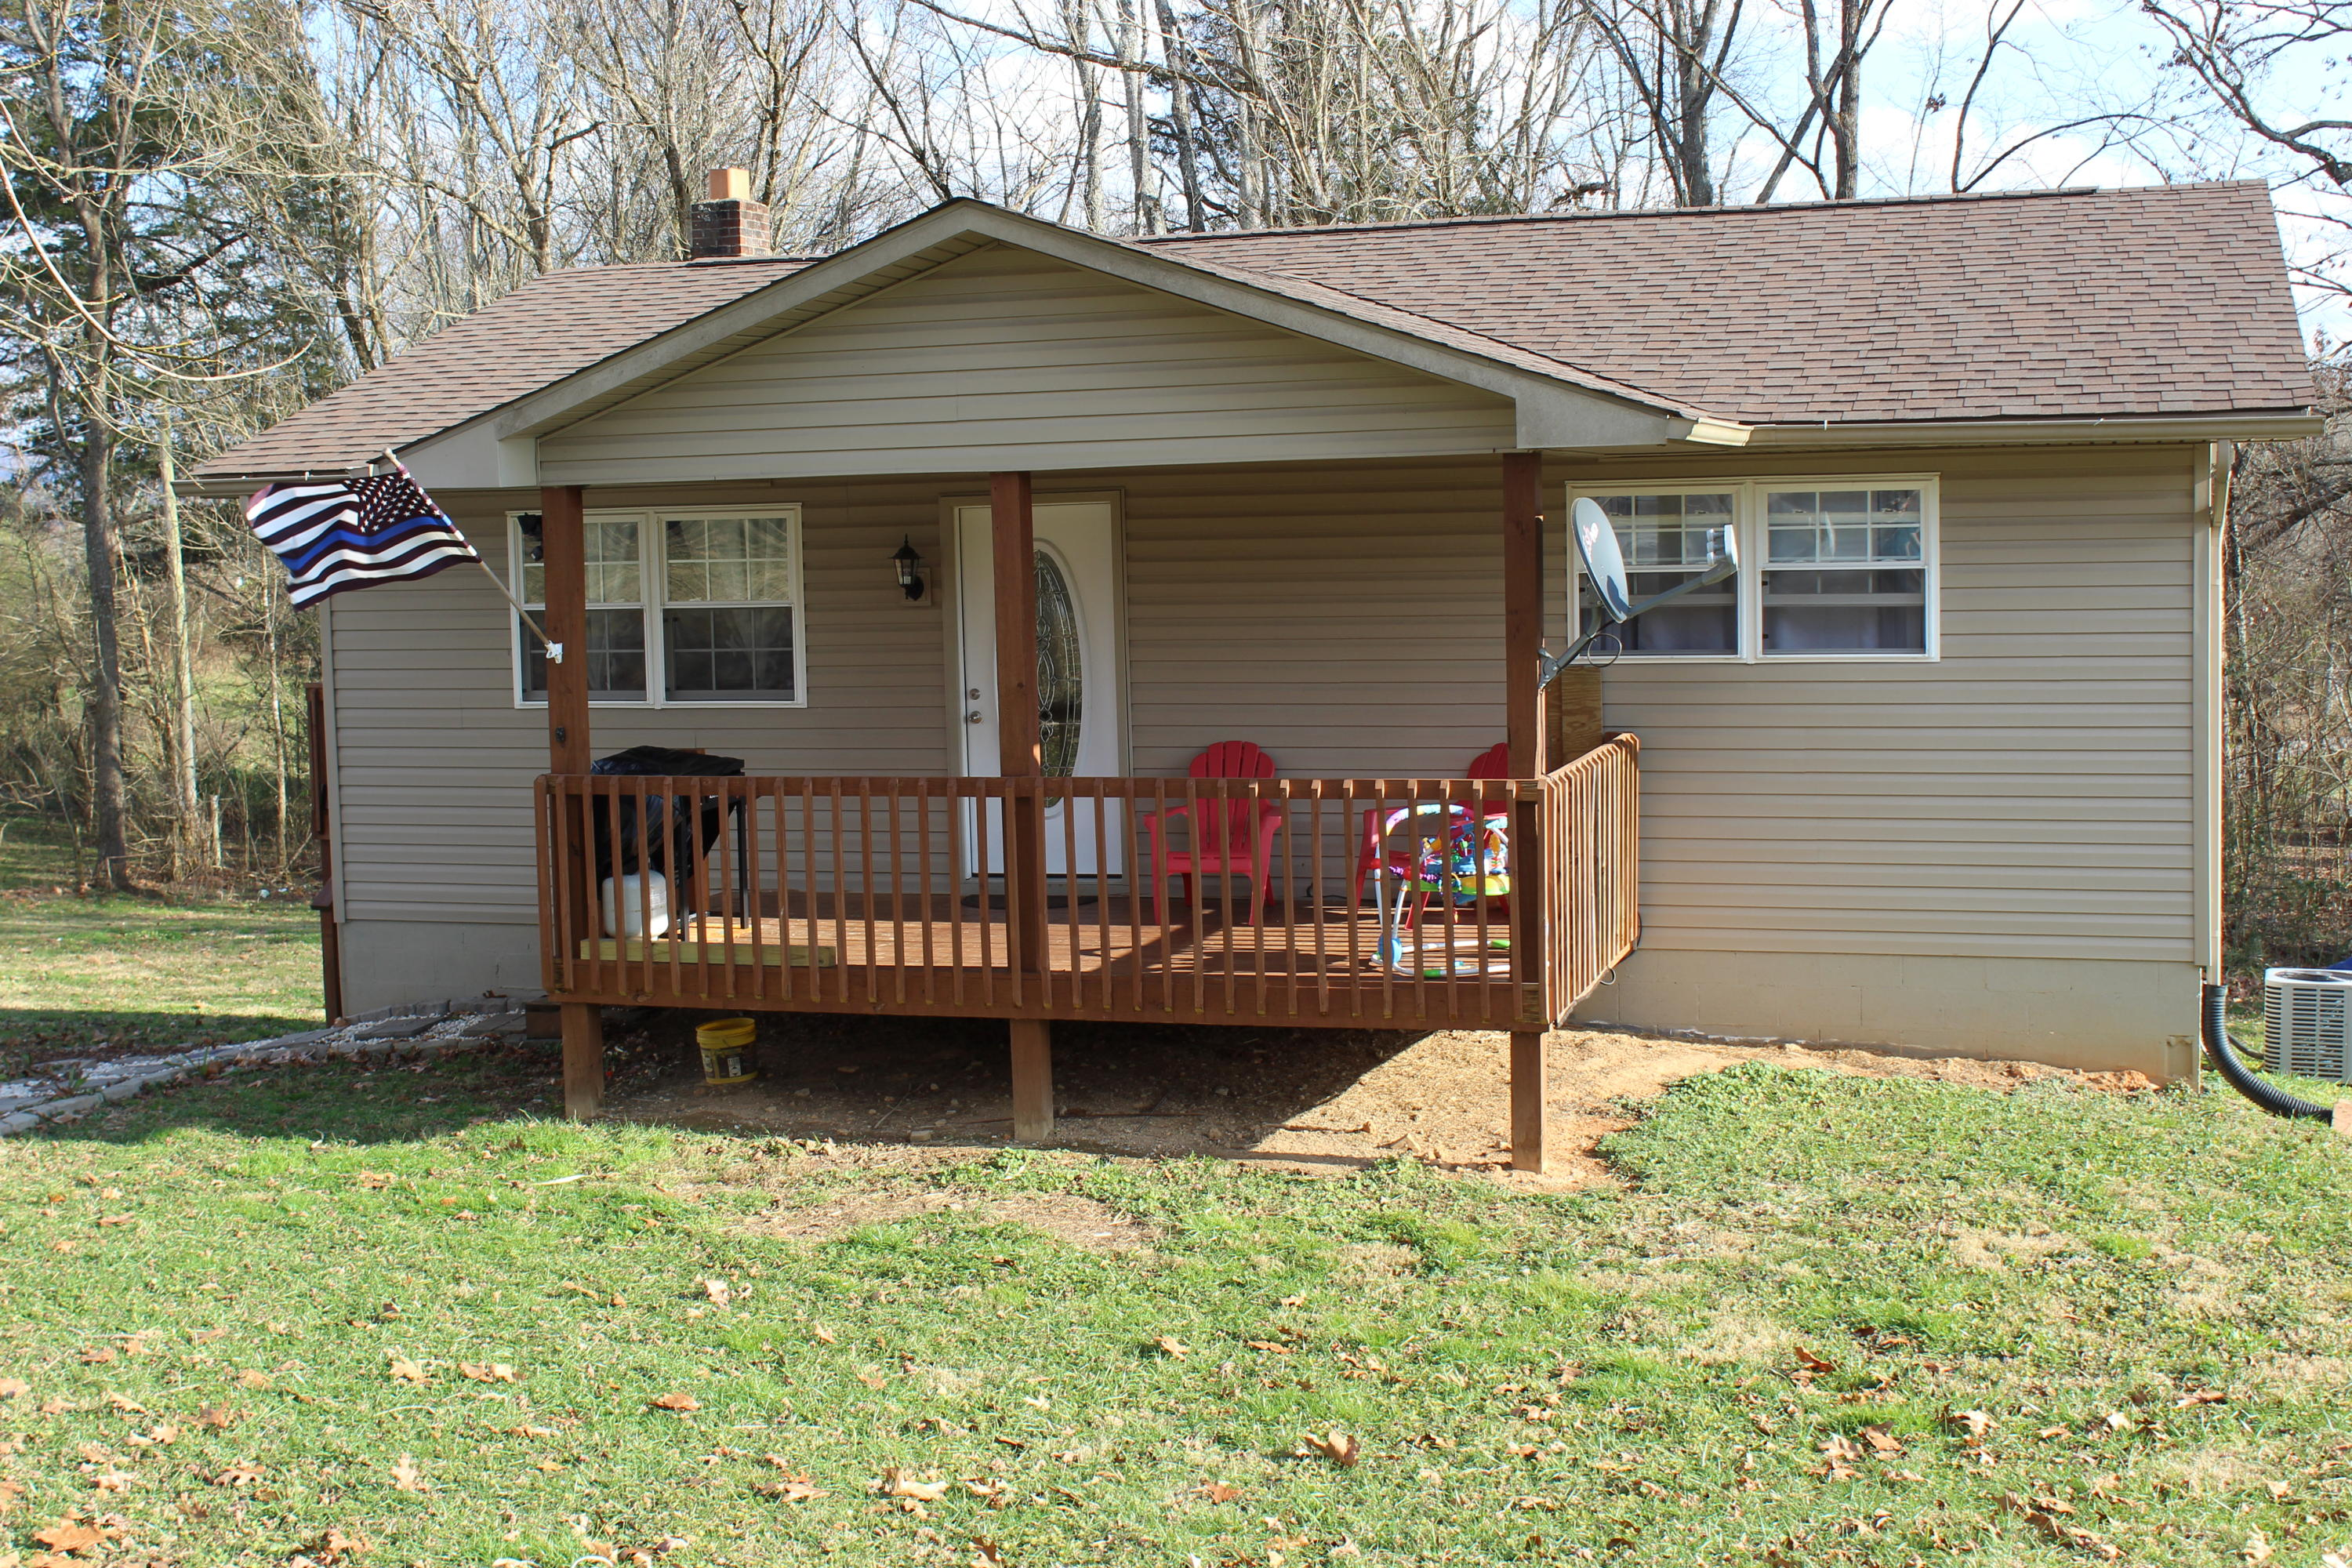 105 Walnut St, New Tazewell, Tennessee 37825, 3 Bedrooms Bedrooms, ,2 BathroomsBathrooms,Single Family,For Sale,Walnut,1066158